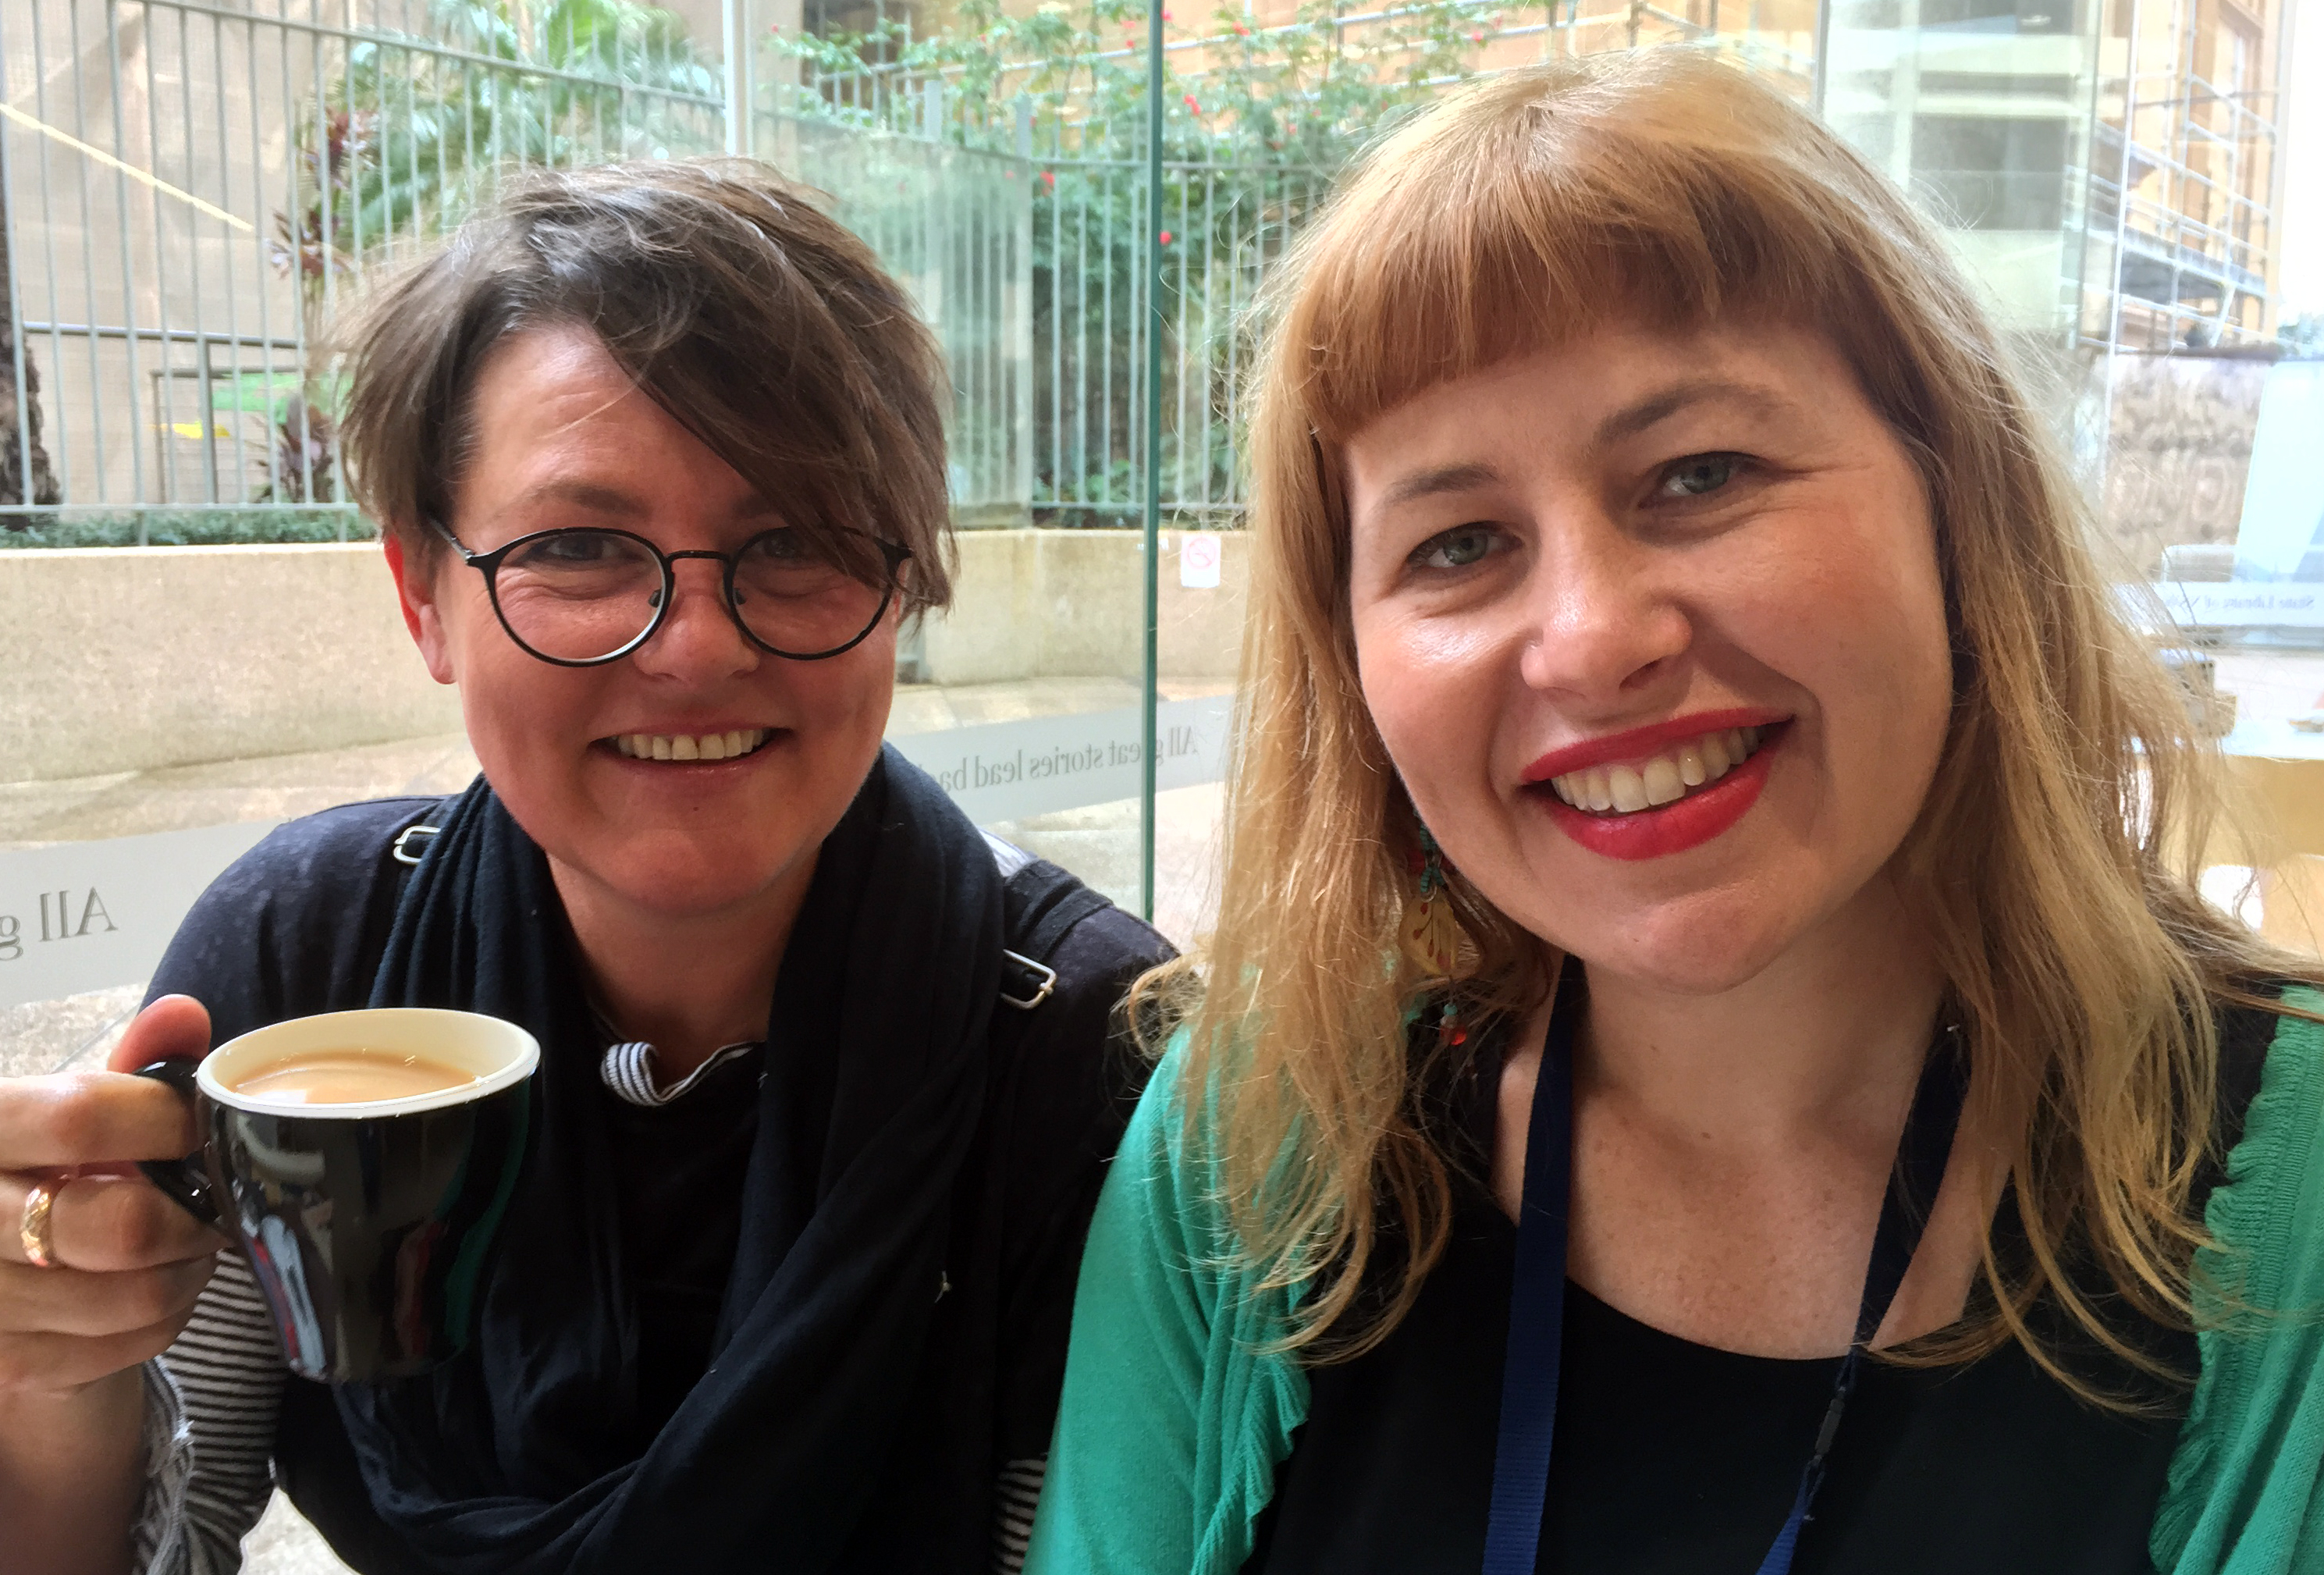 Two women sit side by side smiling at the camera - one holds a cup of tea.